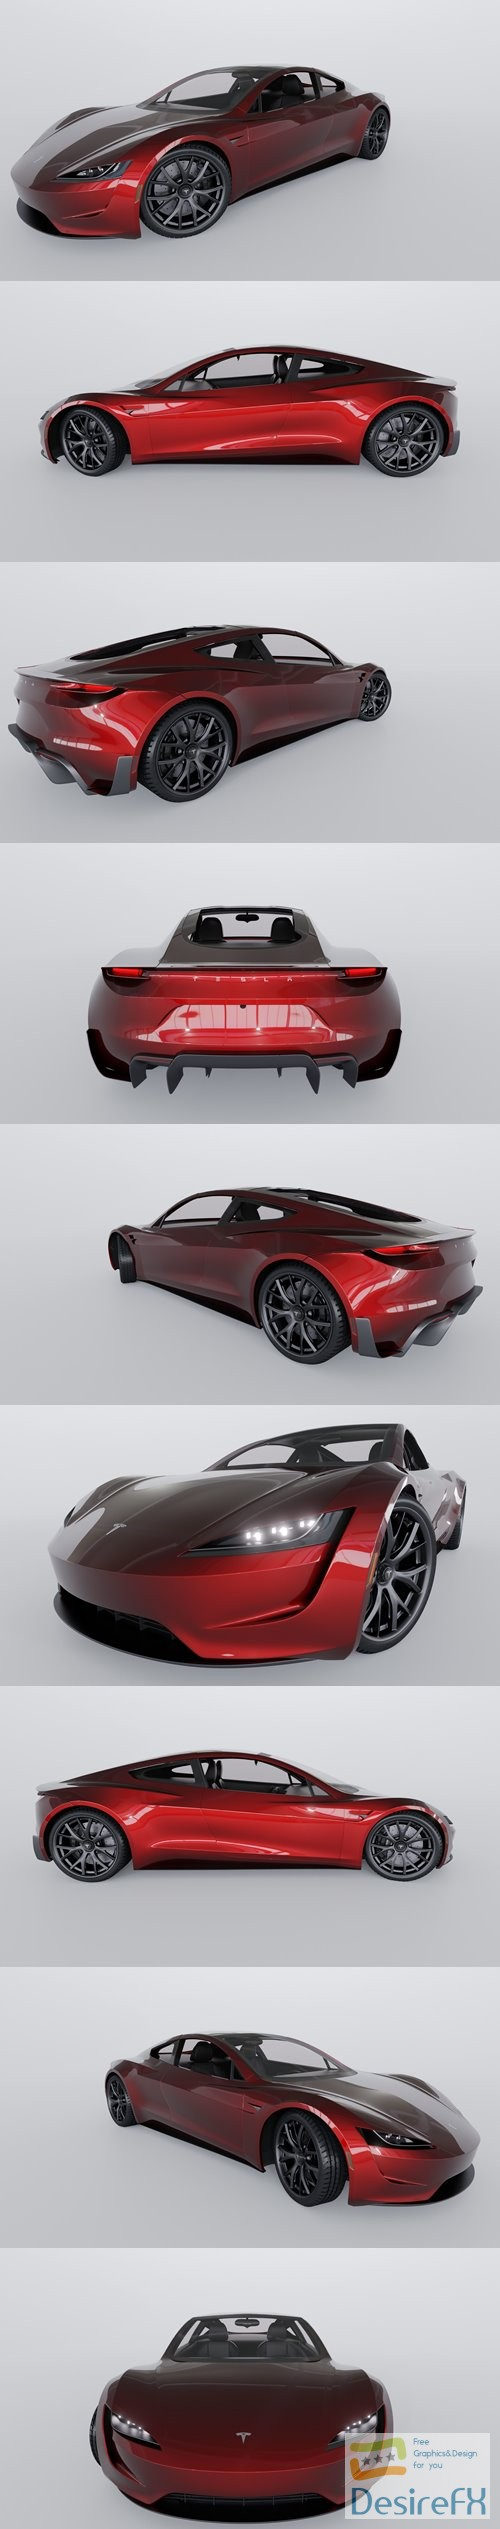 3d-models - Tesla Roadster 2020 3D Model